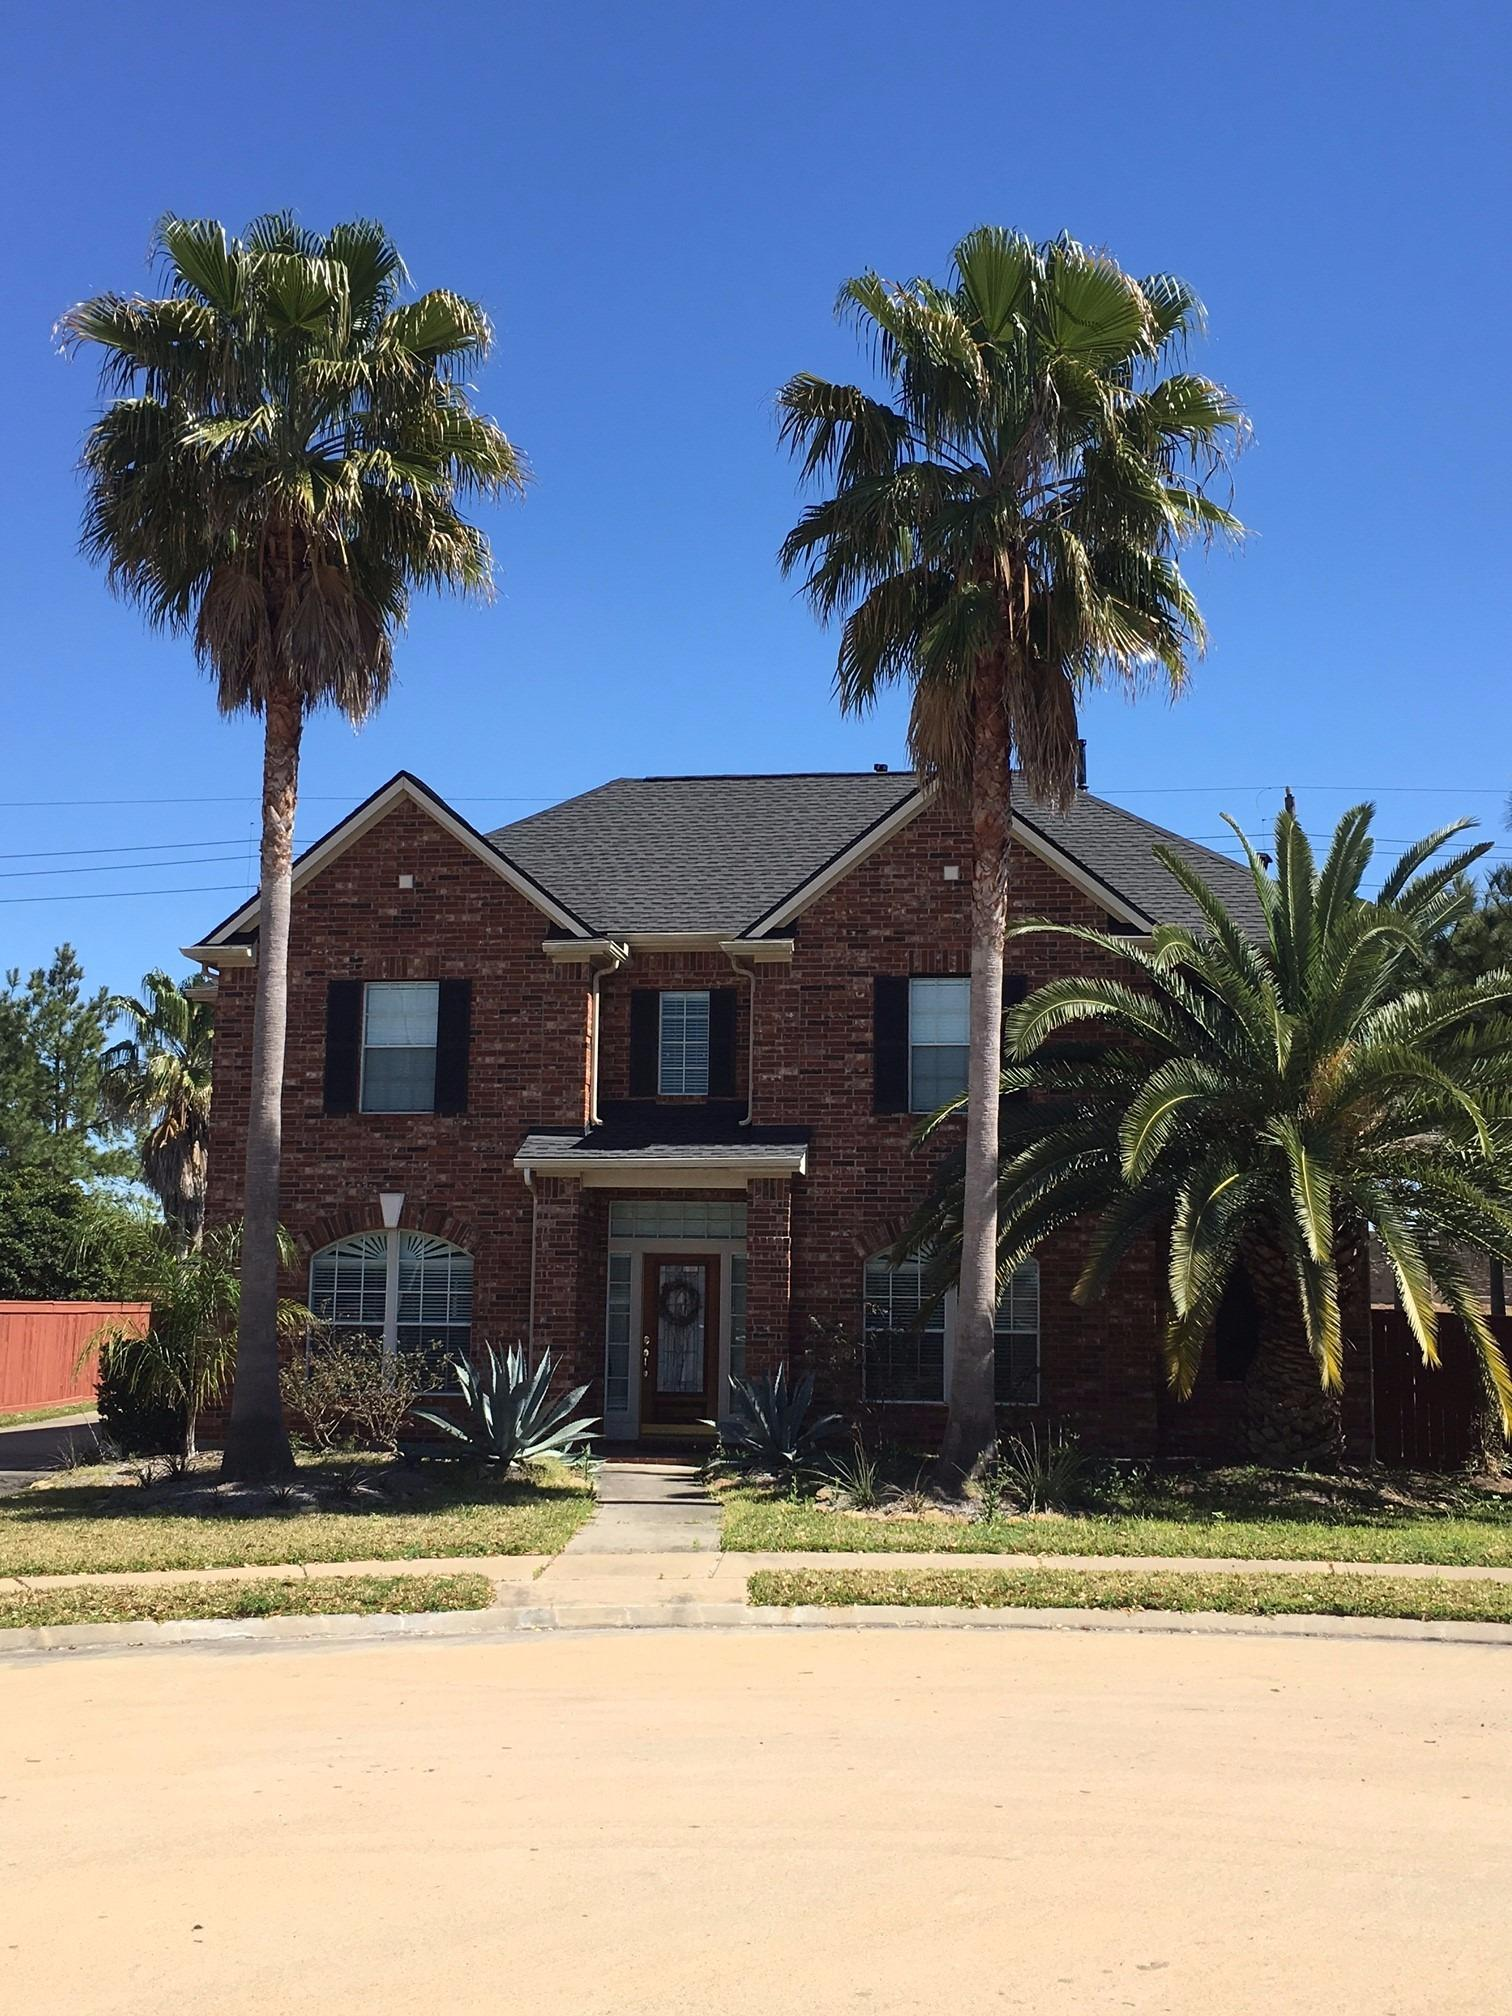 Houston Roofing & Construction image 6